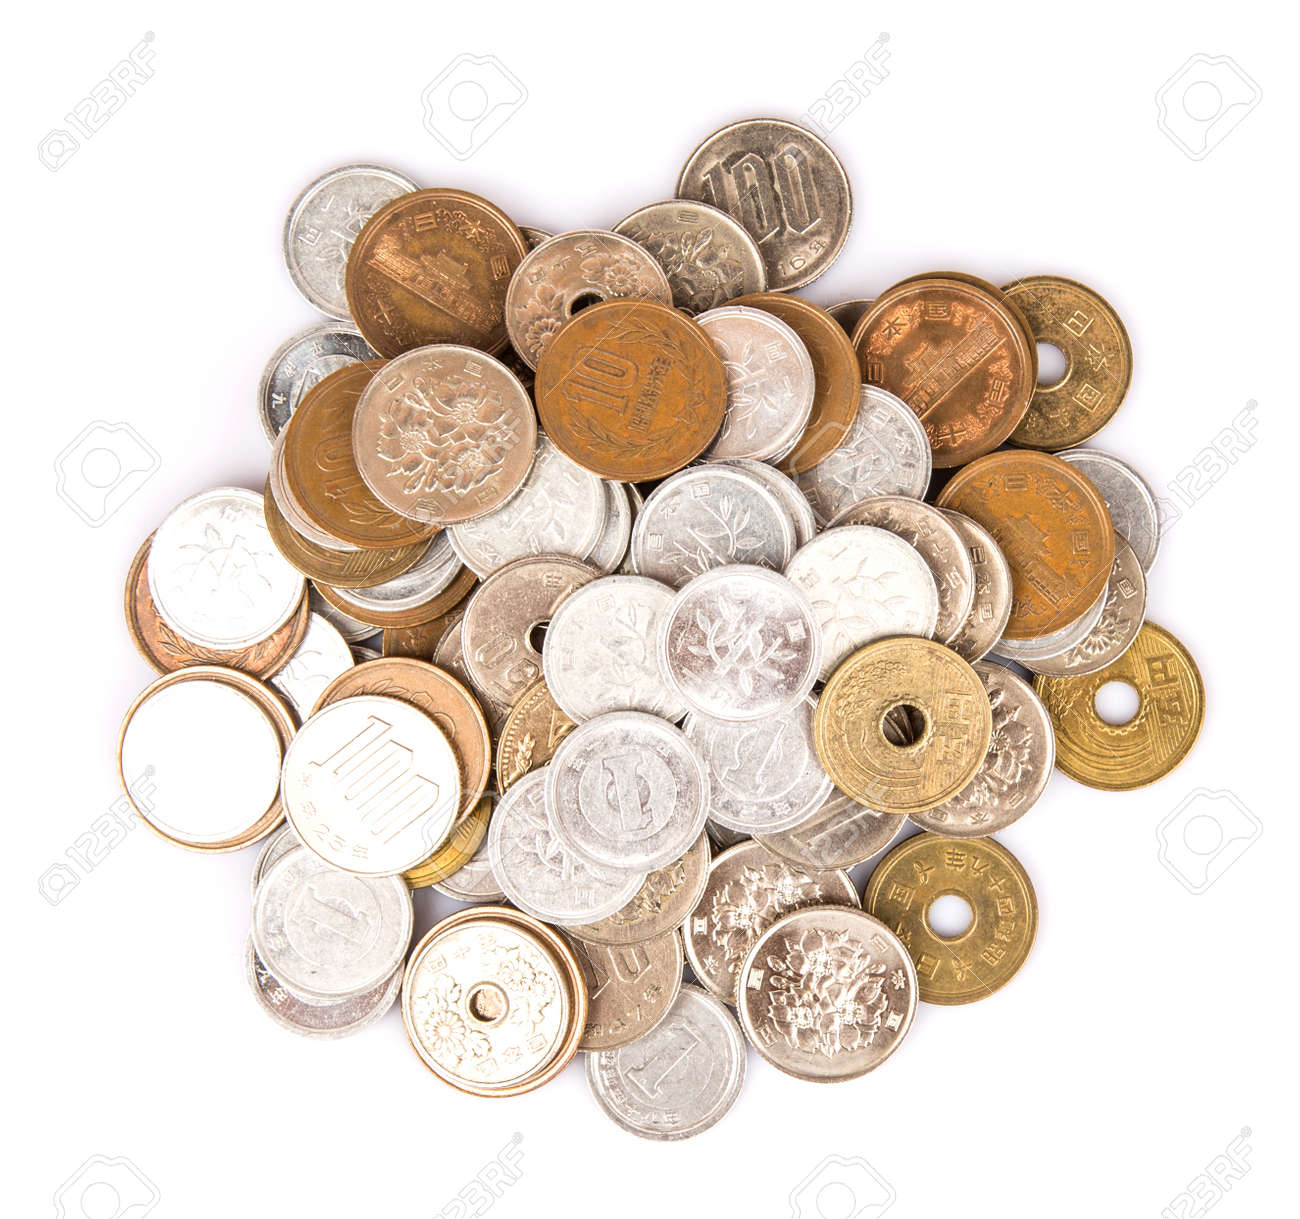 japanese yen coins over white background stock photo picture and